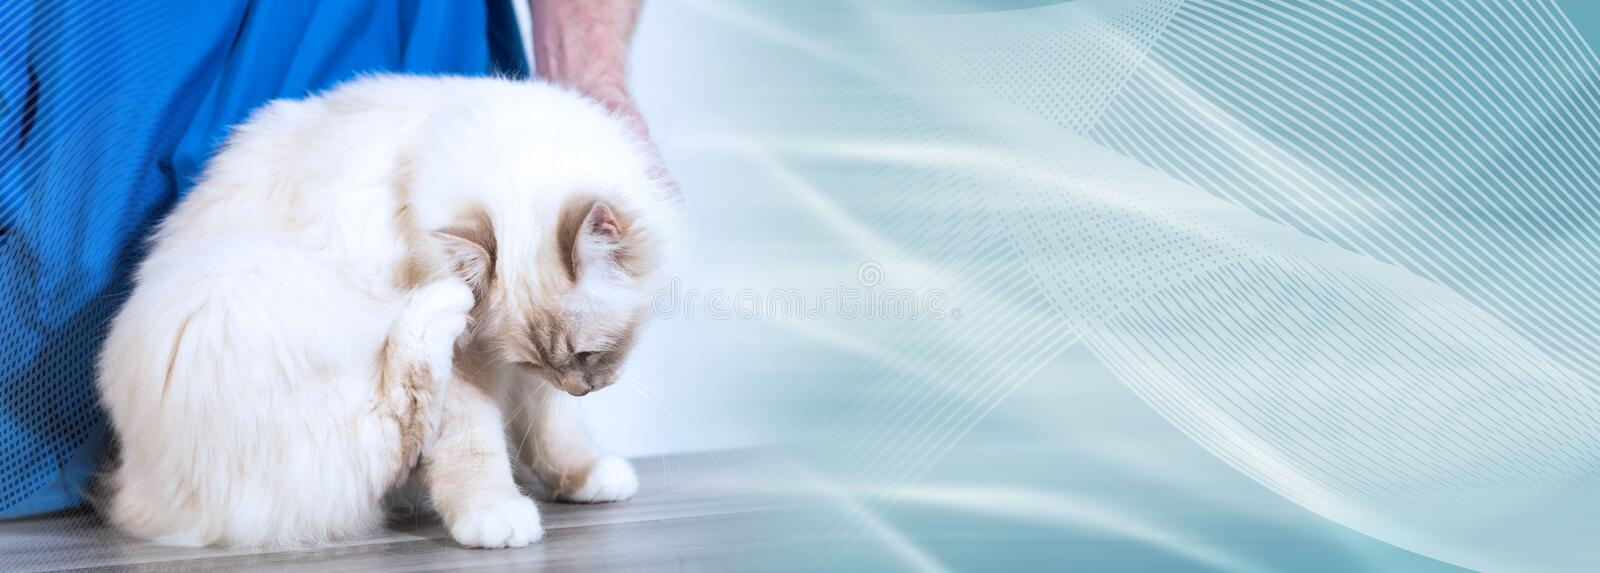 White sacred cat of burma at the vet scratching his head. panoramic banner. Beautiful white sacred cat of burma at the vet scratching his head. panoramic banner royalty free stock images